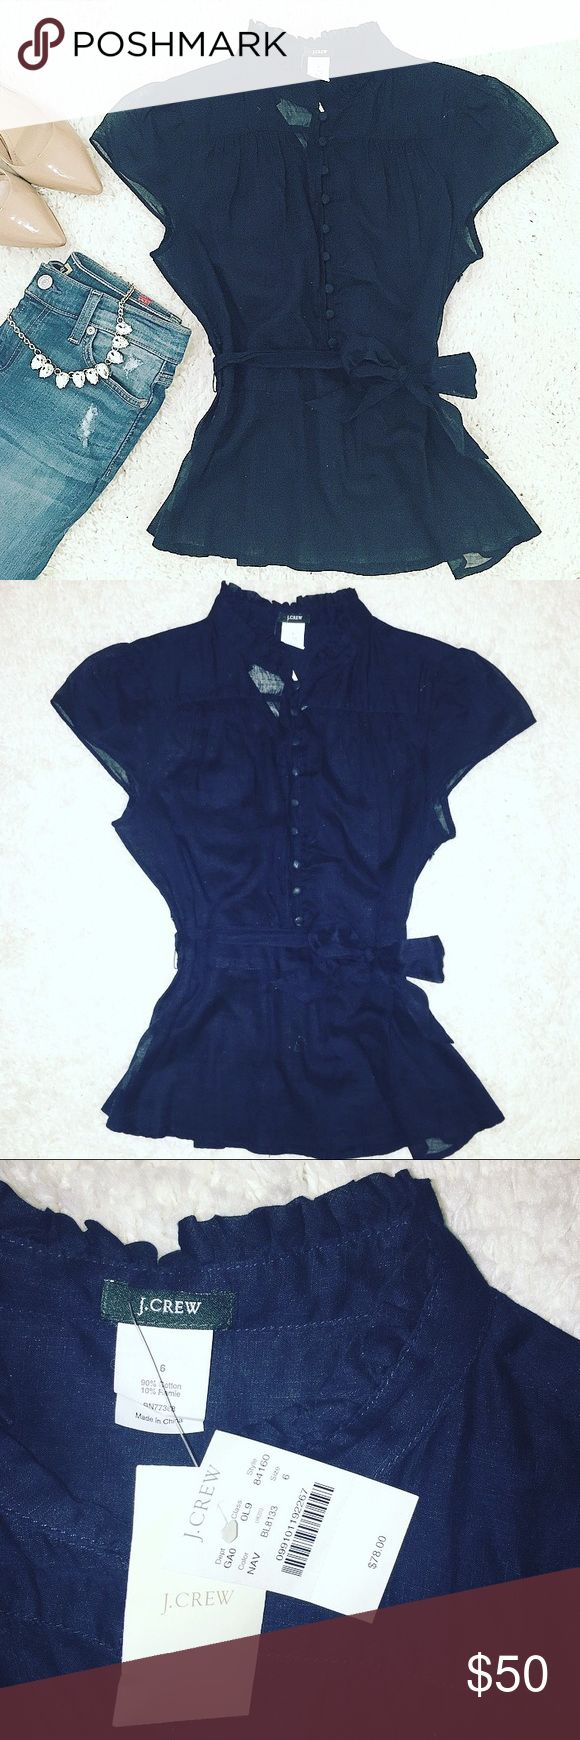 J. Crew | Navy Cap Sleeve Sheer Blouse NWT J. Crew cap sleeve sheer peplum blouse. 90% cotton 10% Ramie. Buttons up from the waist. Ties at the waist. Hidden zipper at the side. J. Crew Tops Blouses